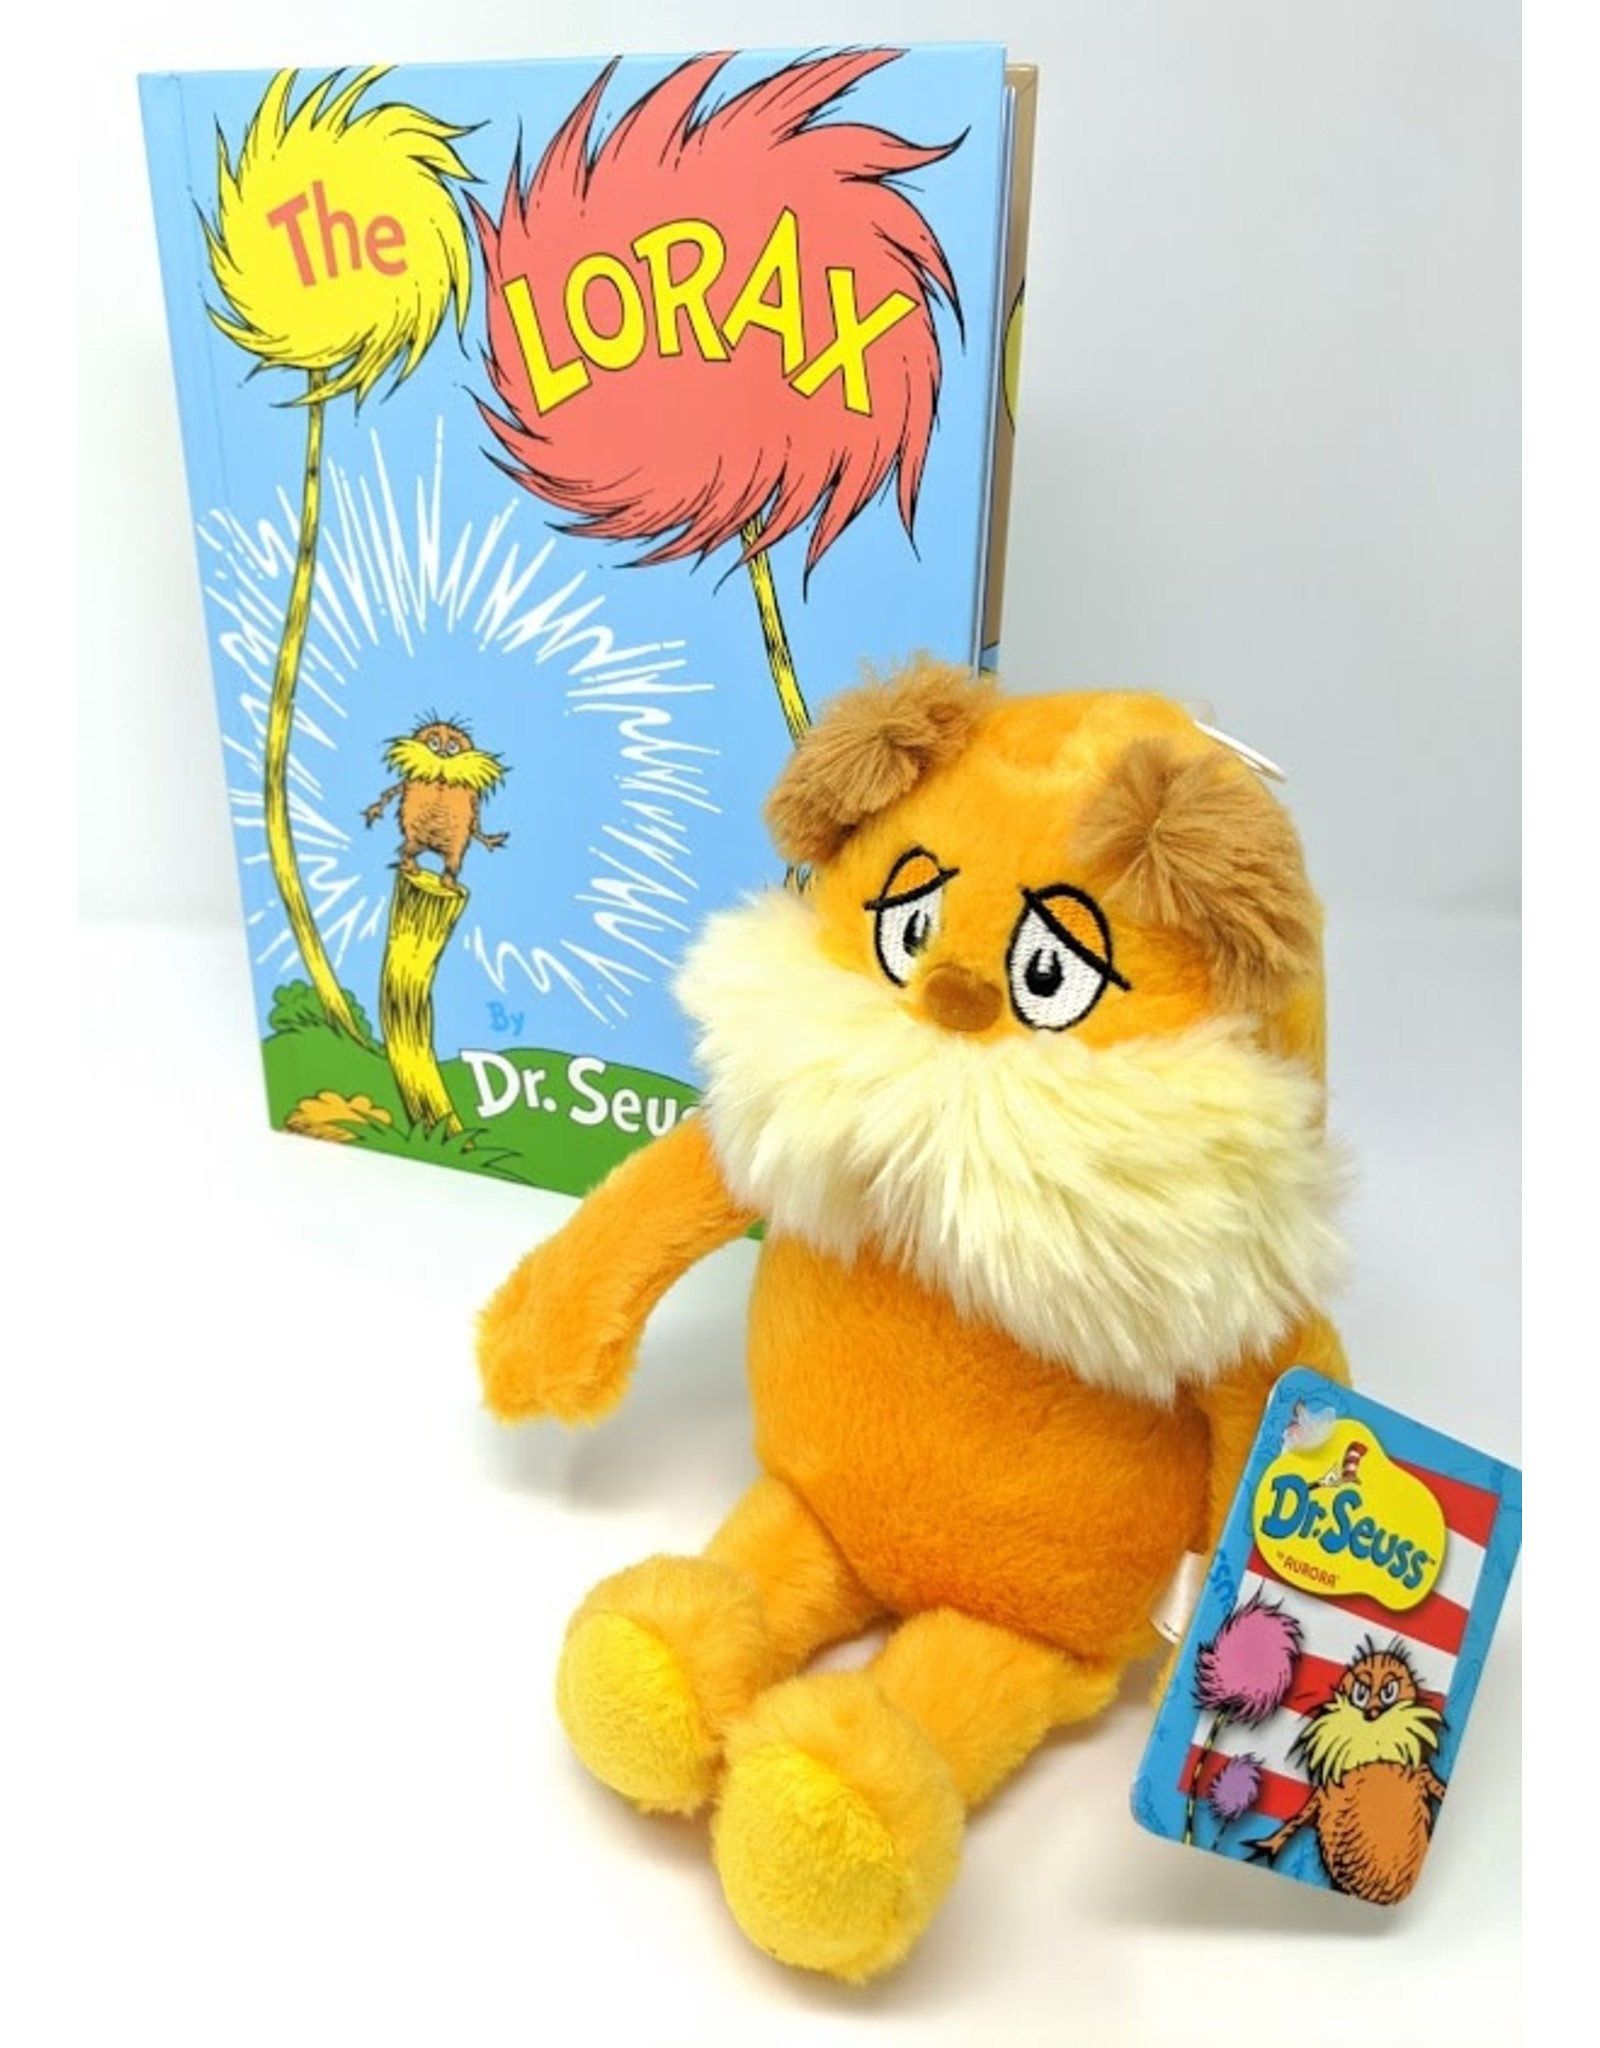 Dr. Seuss Dr. Seuss Gift Package - The Lorax with plush